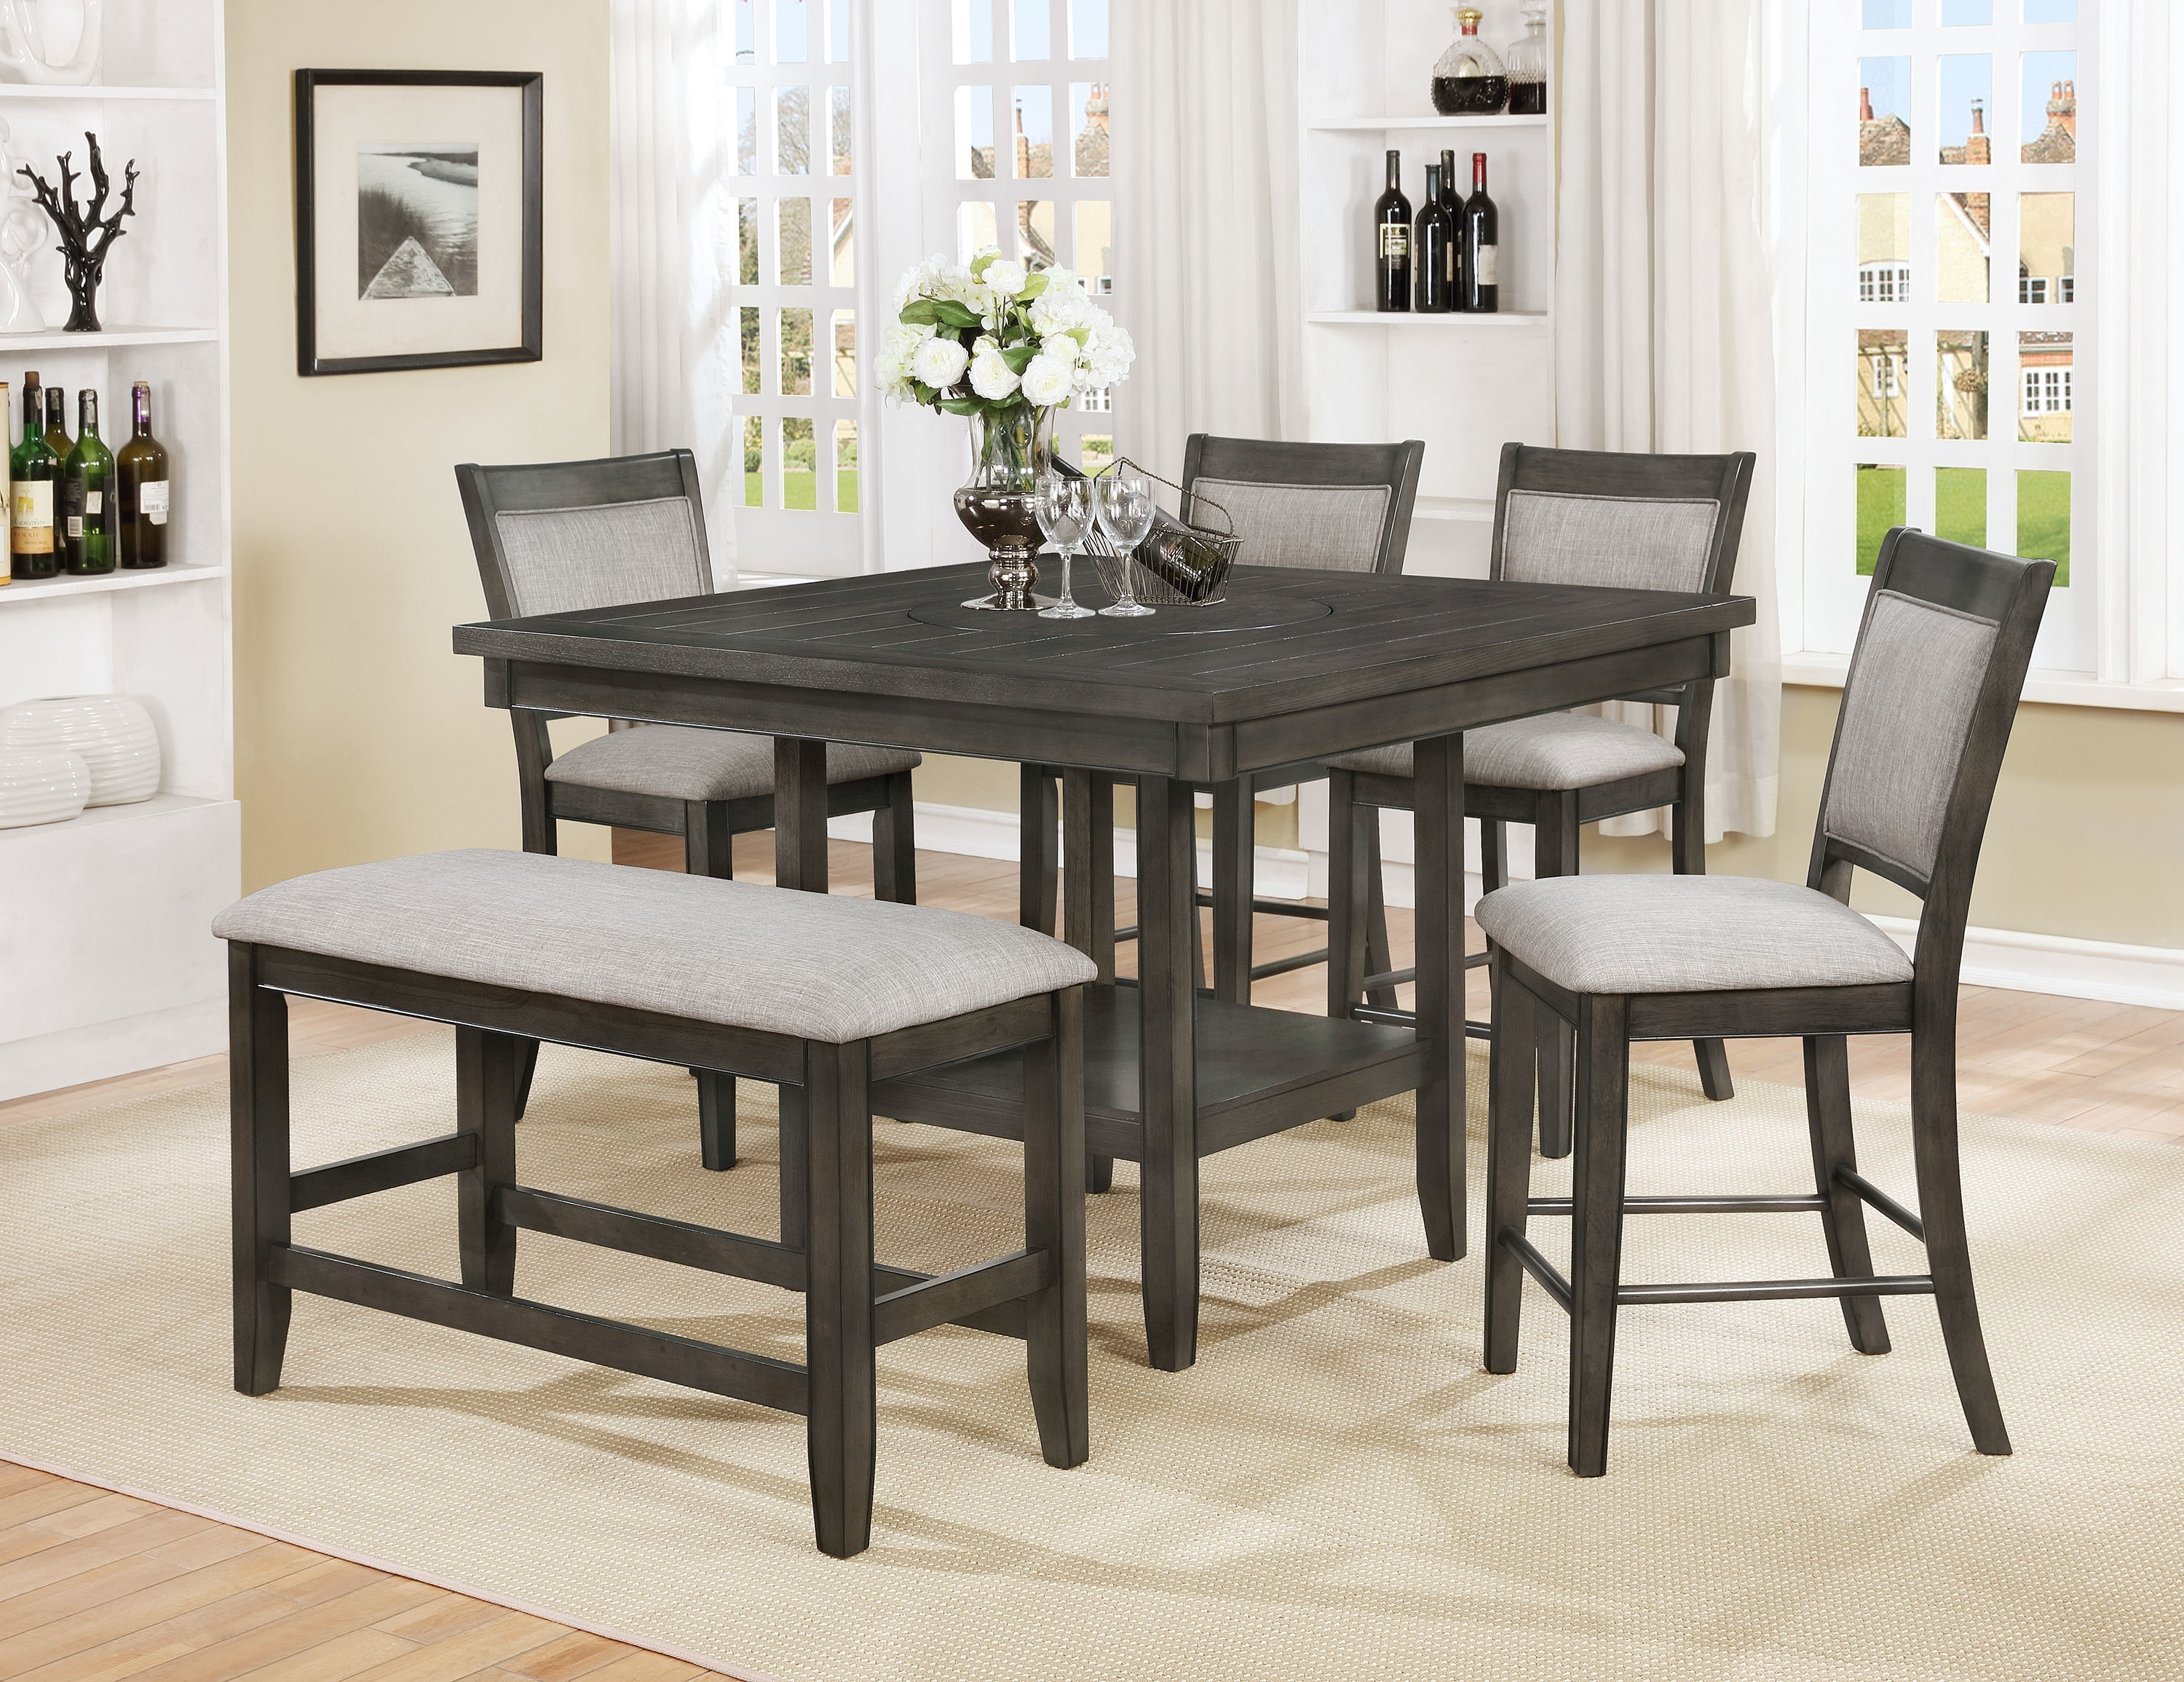 Wayfair In Popular Parquet 7 Piece Dining Sets (View 14 of 25)